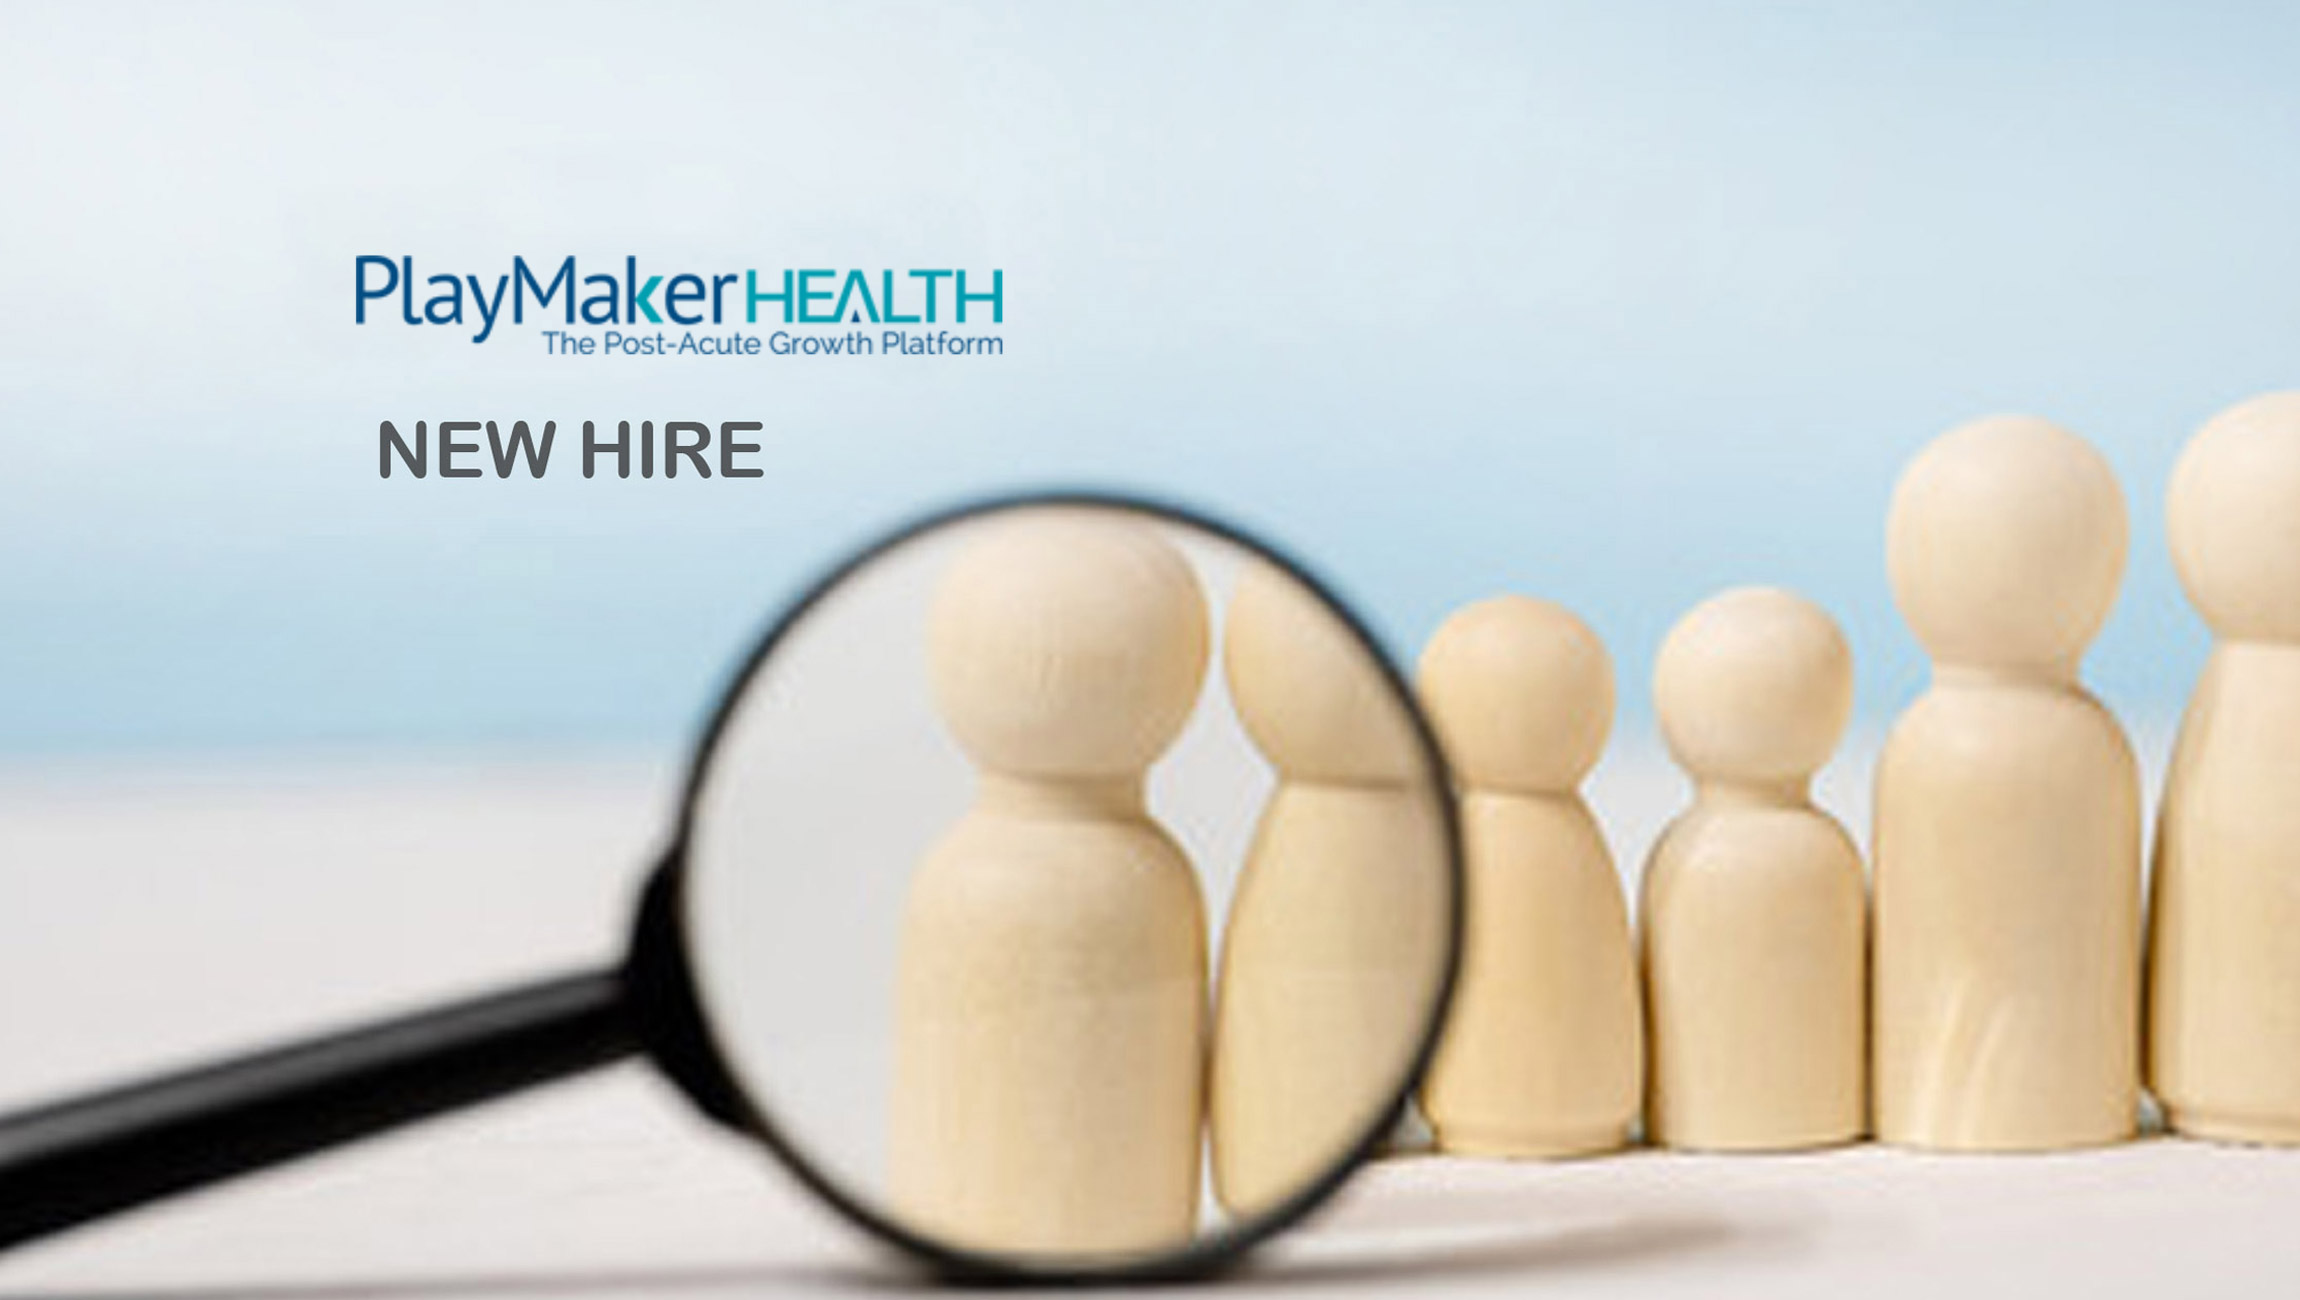 PlayMaker Health Announces New Director of Data Services